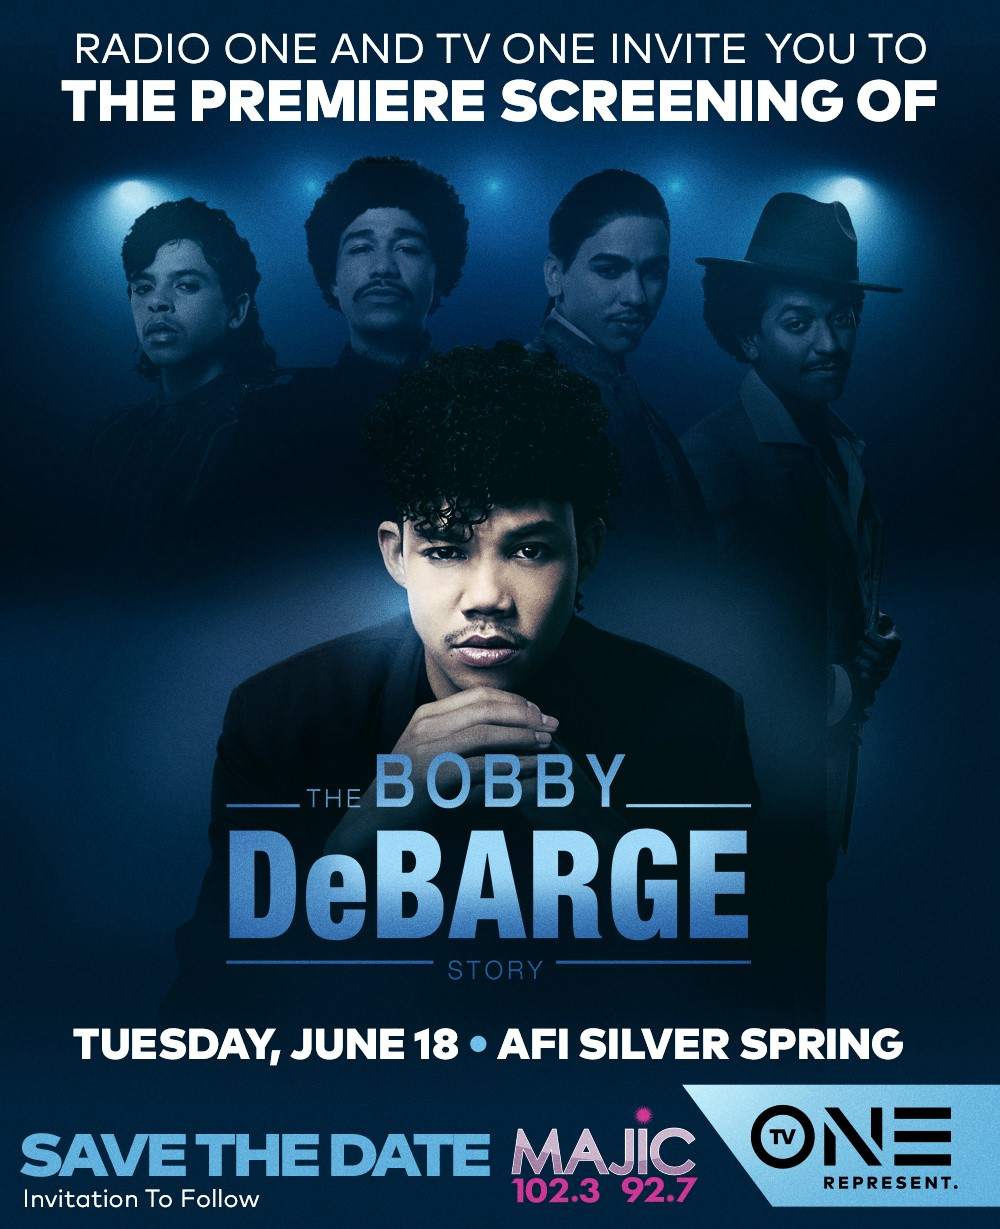 Bobby DeBarge Movie Premiere